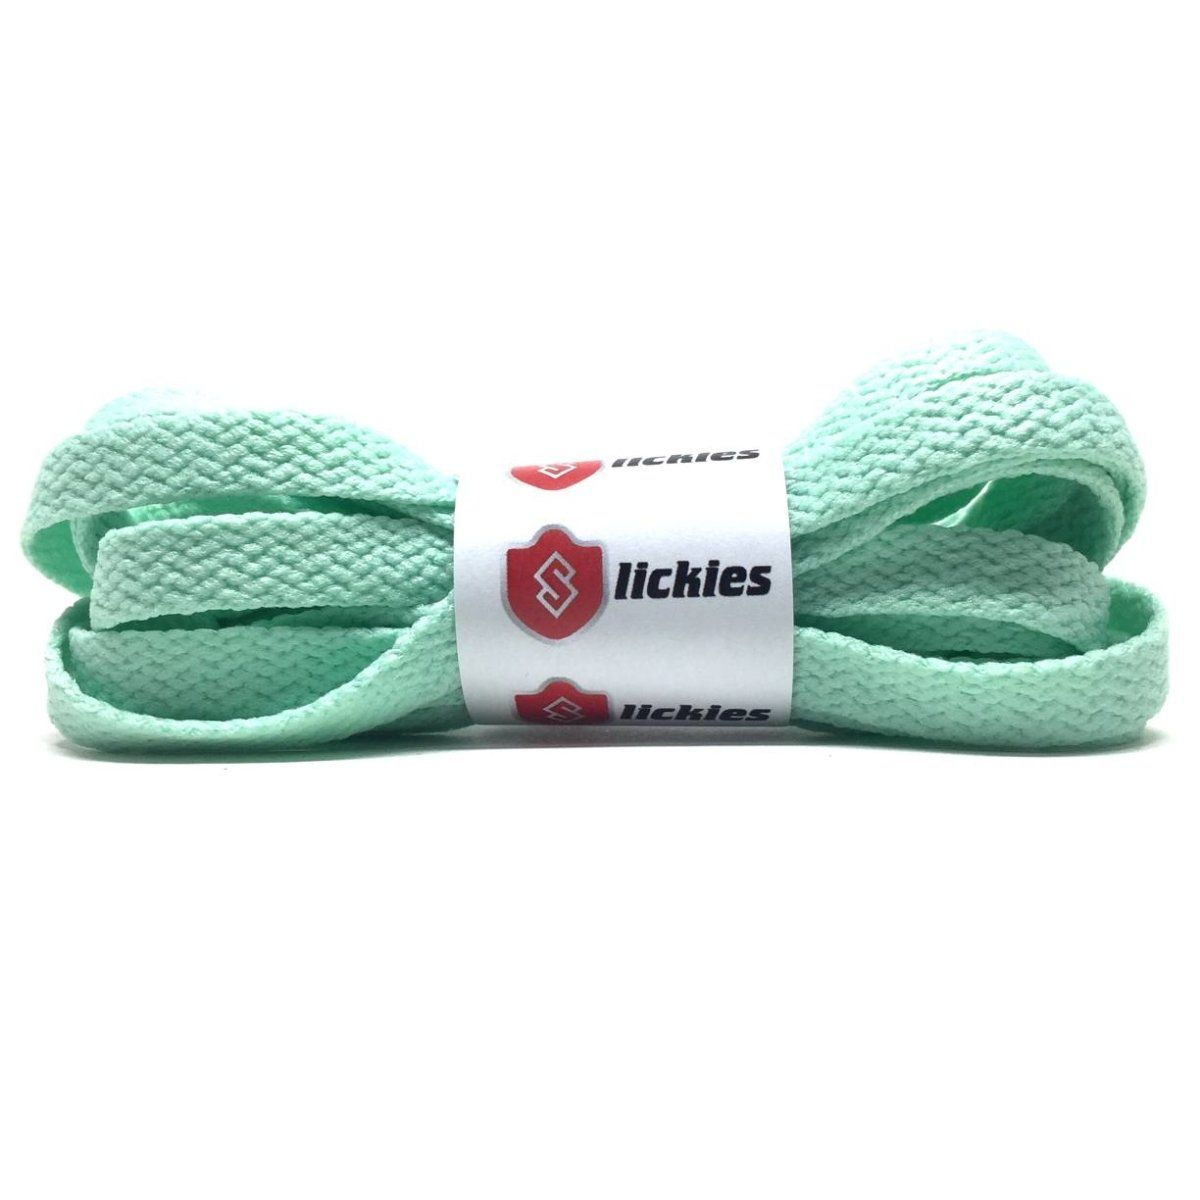 Flat Thin - BASICS Flat Thin Laces - Mint Green